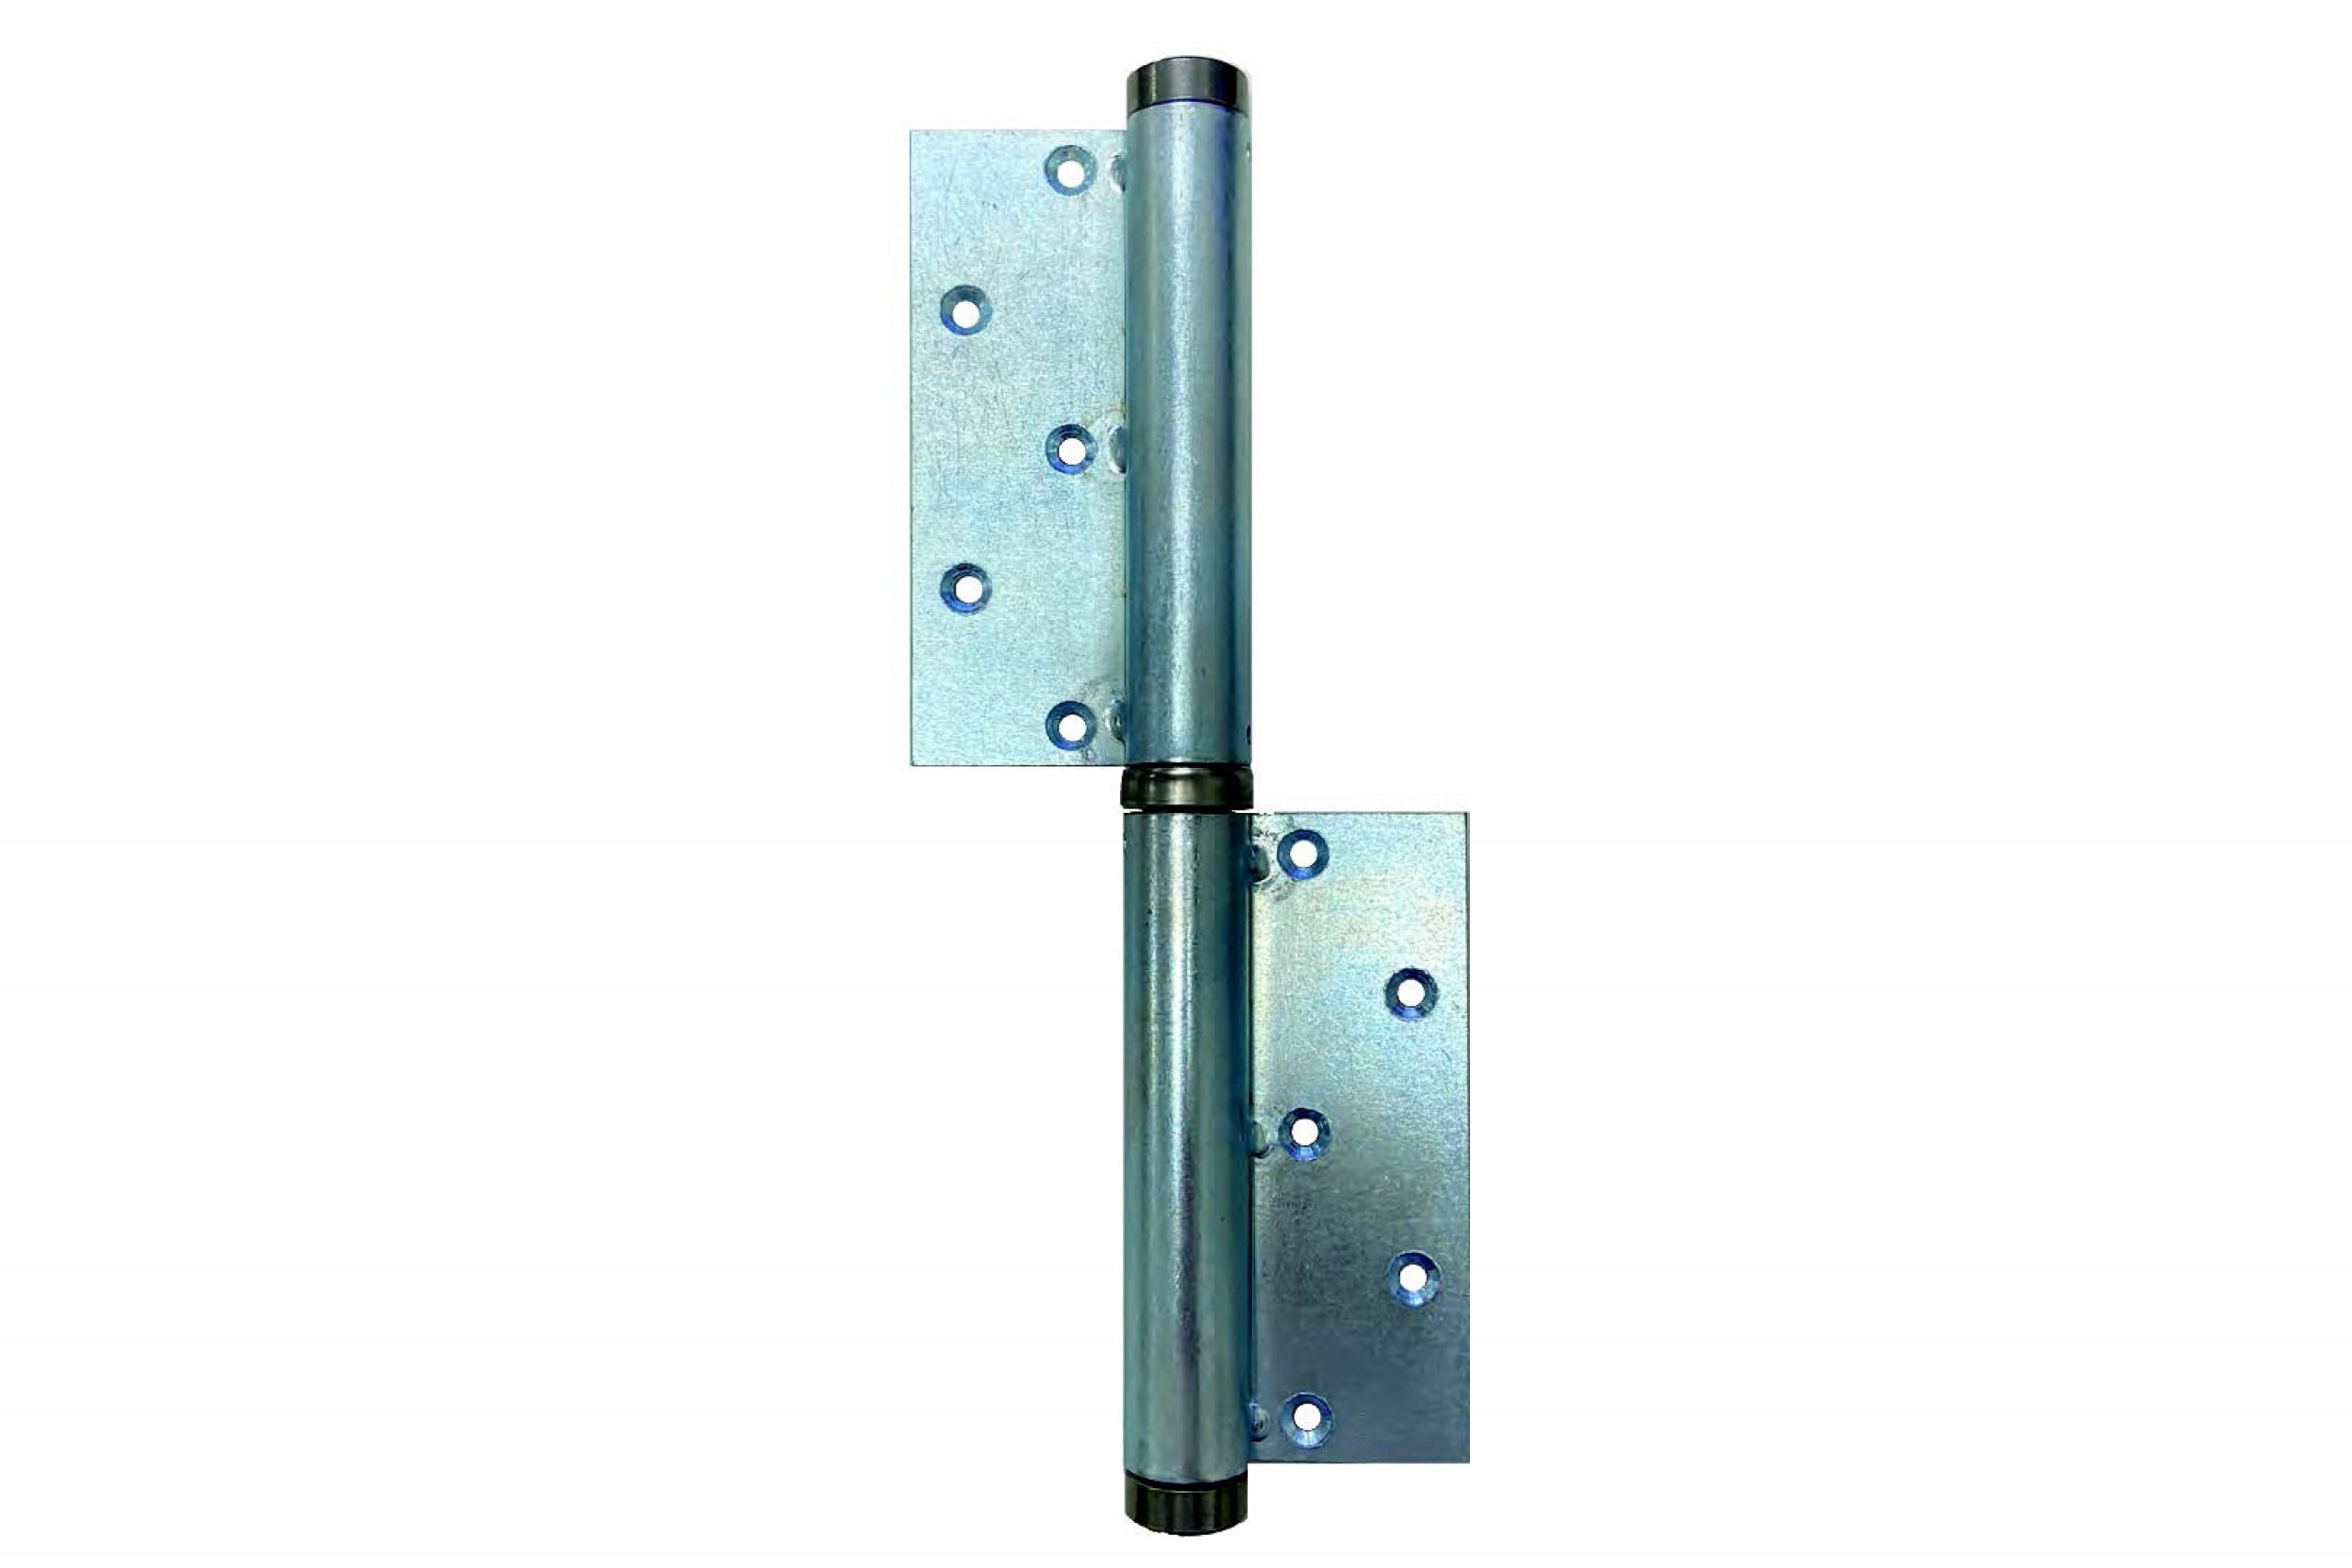 Justor SA240 Spring Hinge by Bellevue Architectural